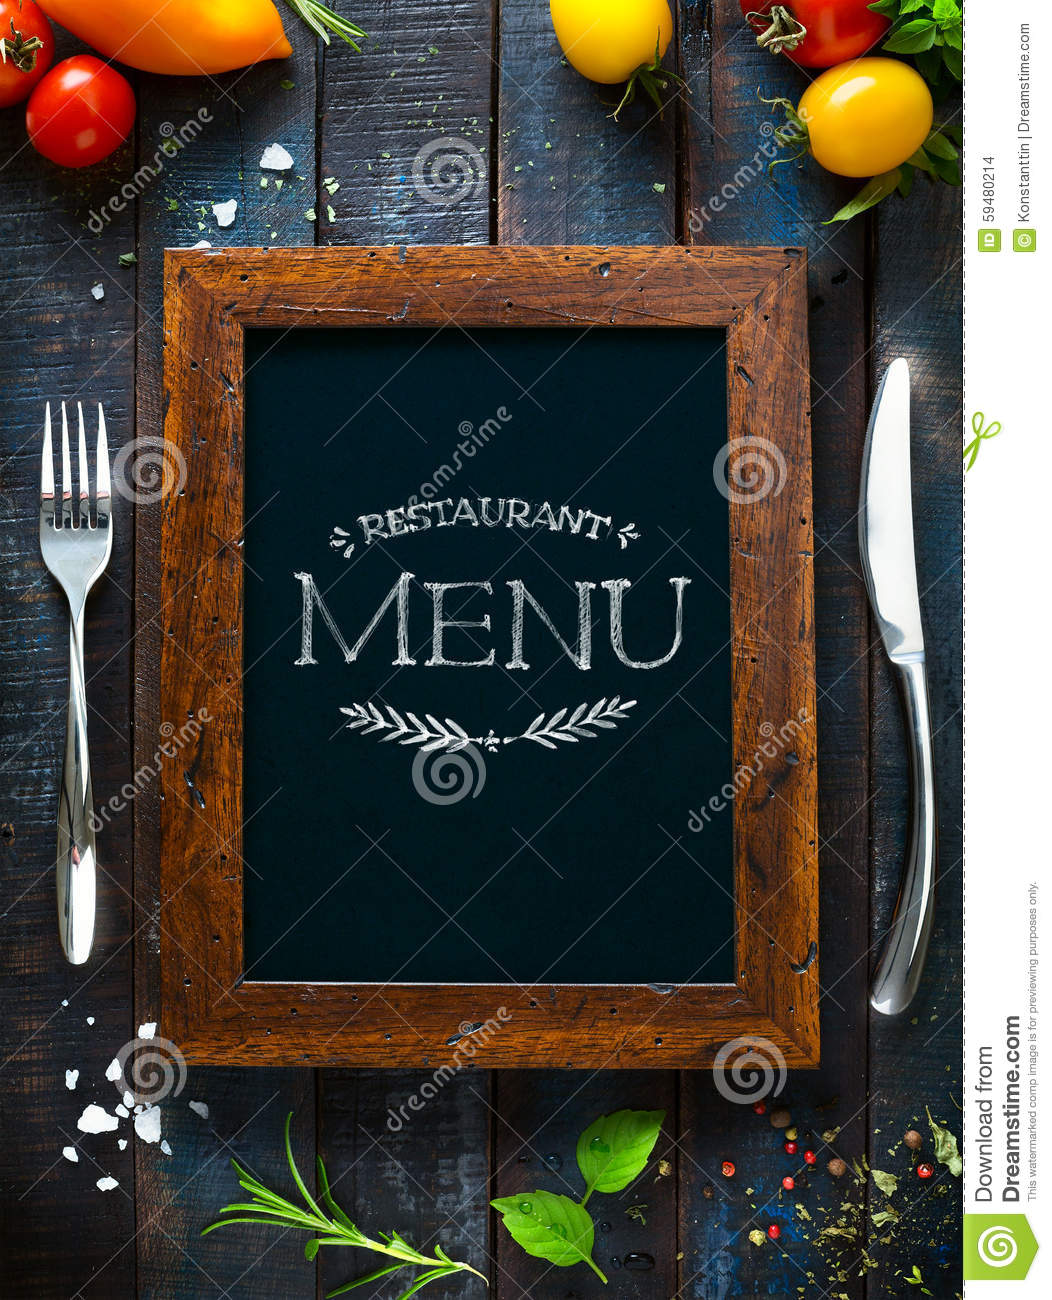 Cafe menu restaurant brochure. Food design template